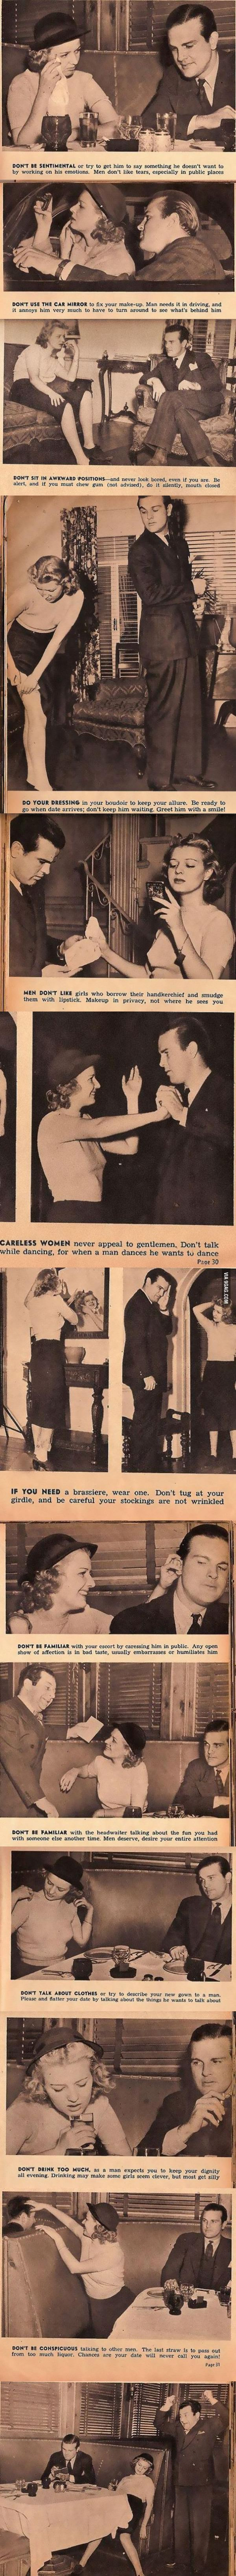 13 hilarious and sexist dating tips from 1938 - Copy